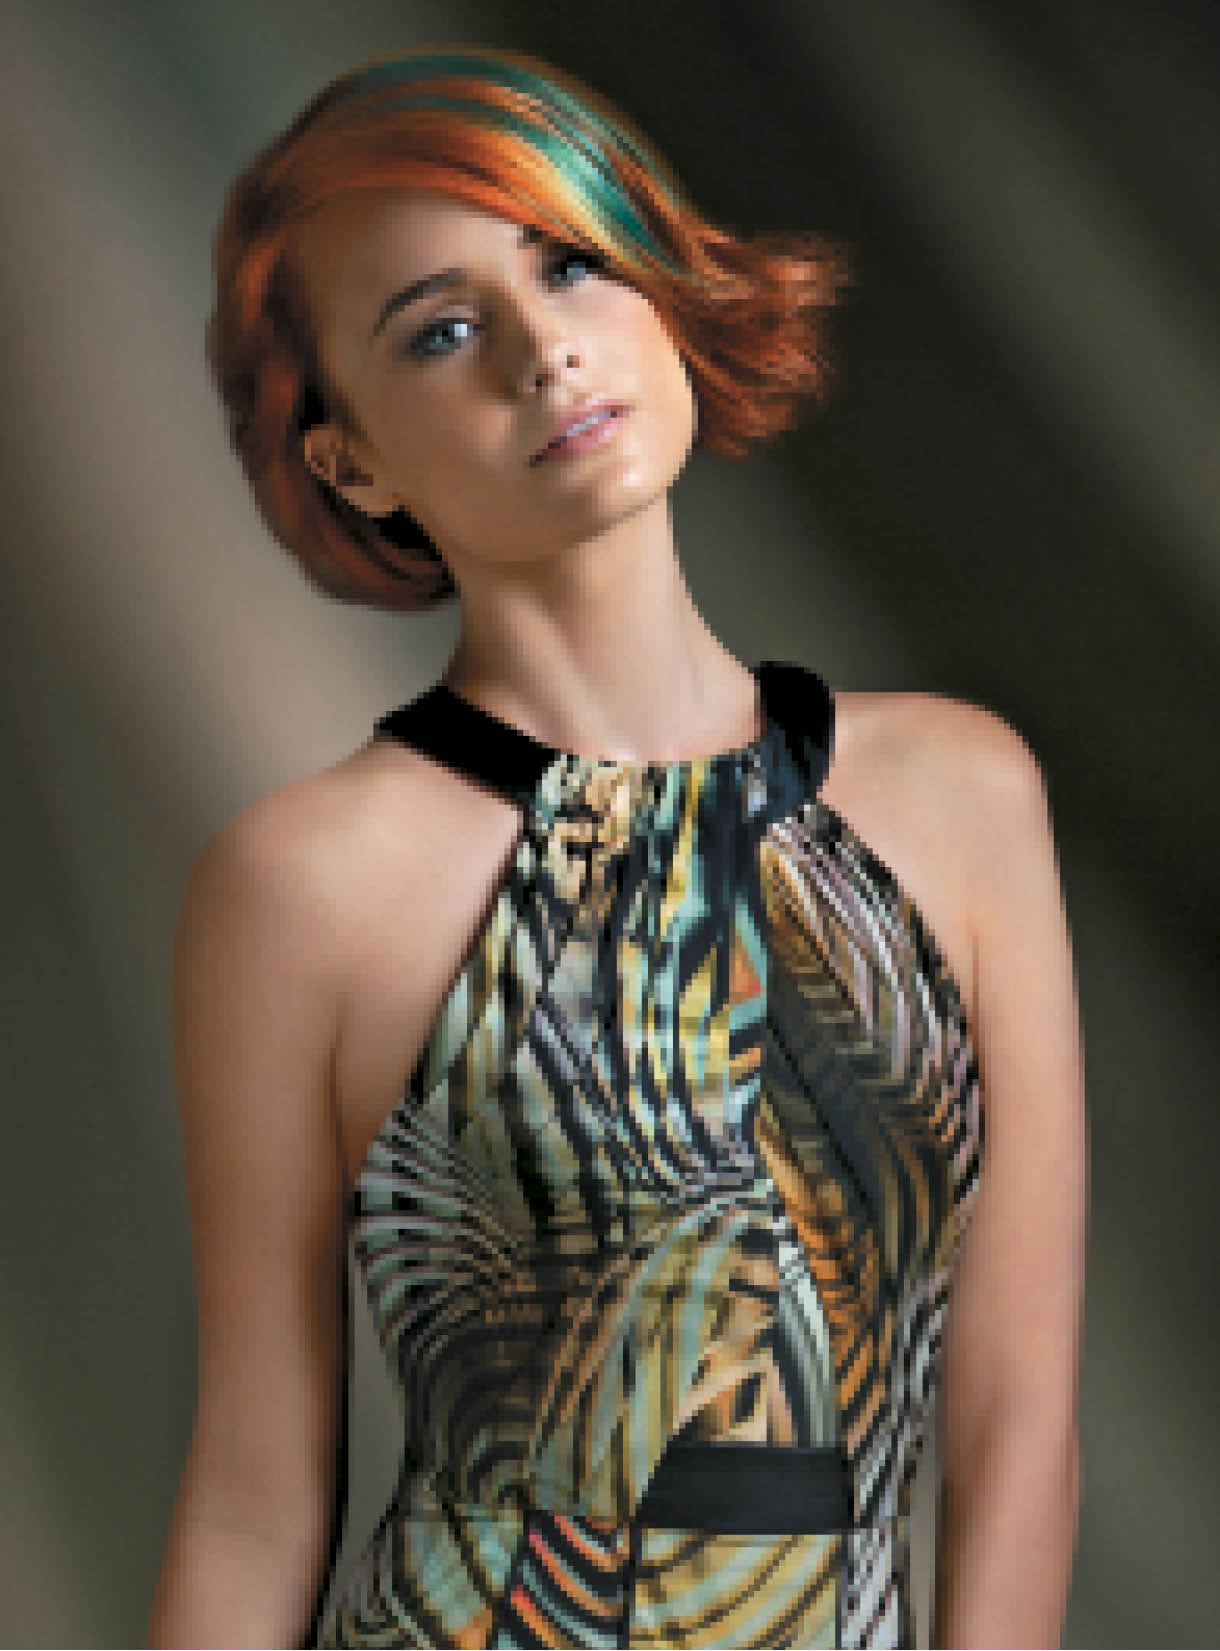 For this take on the New Frontier Uncharted Territories trend, Basham created coppery and vibrant red hues in the hair with Wella Professionals Koleston Perfect and Color.id. After working Velvet Amplifier into damp hair, she blow-dried strands using a round brush for volume and movement, then misted them with Stay Essential Finishing Spray.